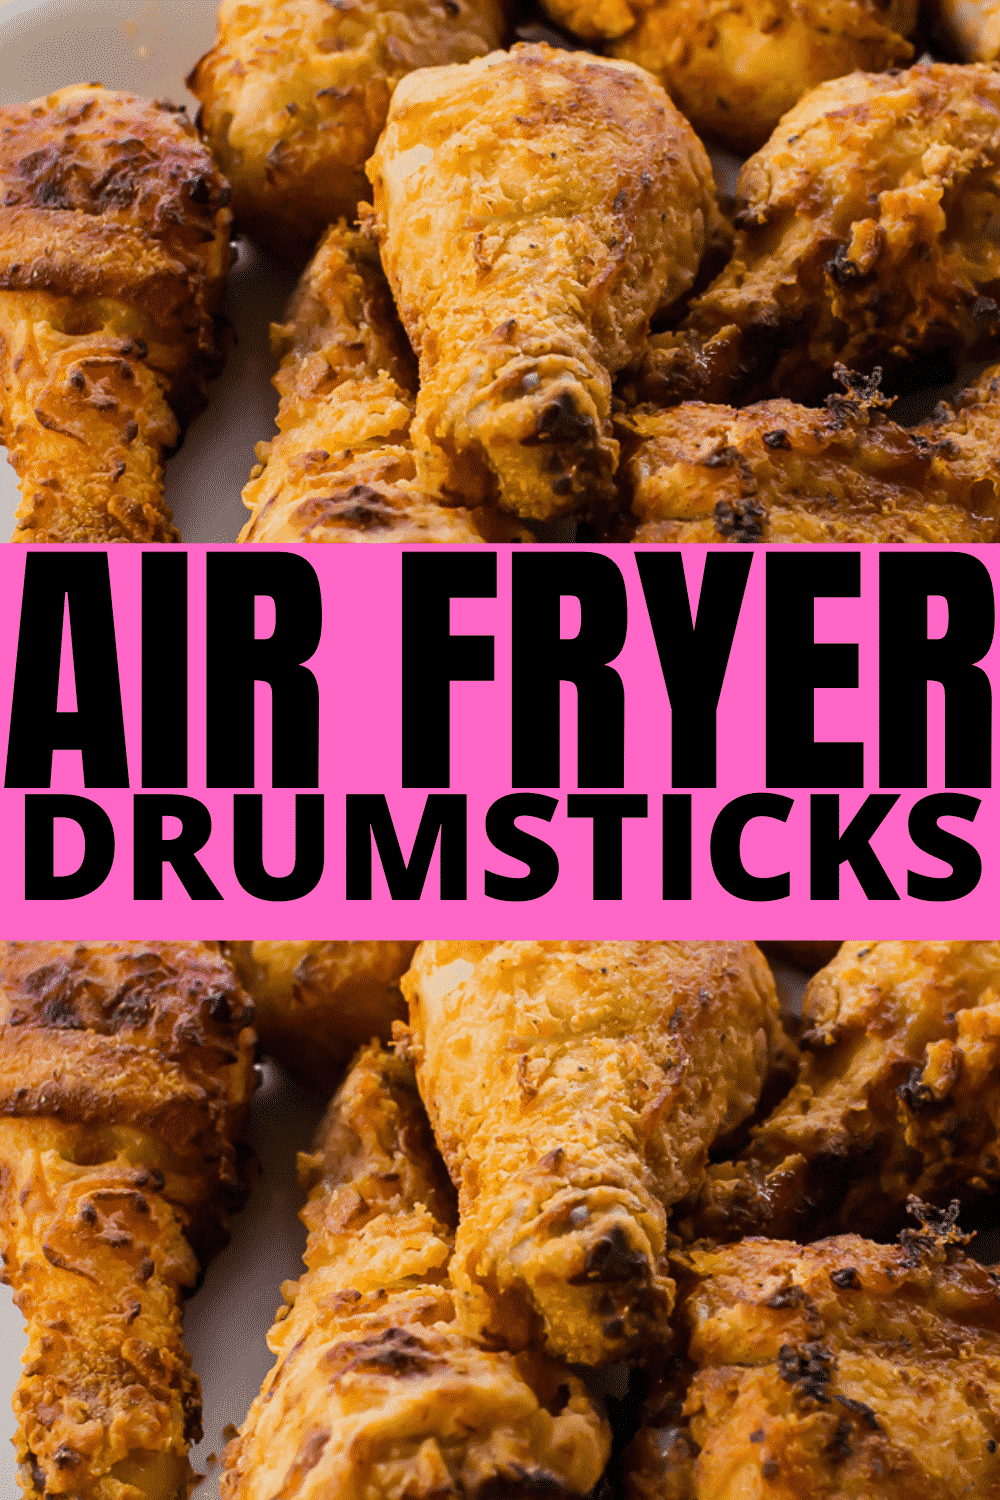 Air Fryer Chicken Drumsticks are a quick budget dinner the family will love! Ditch the oil and make the crispiest fried chicken in the air fryer with a seasoned flour coating. #airfryerdrumsticks #airfryerchicken #airfryerchickendrumsticks via @vegetarianmamma